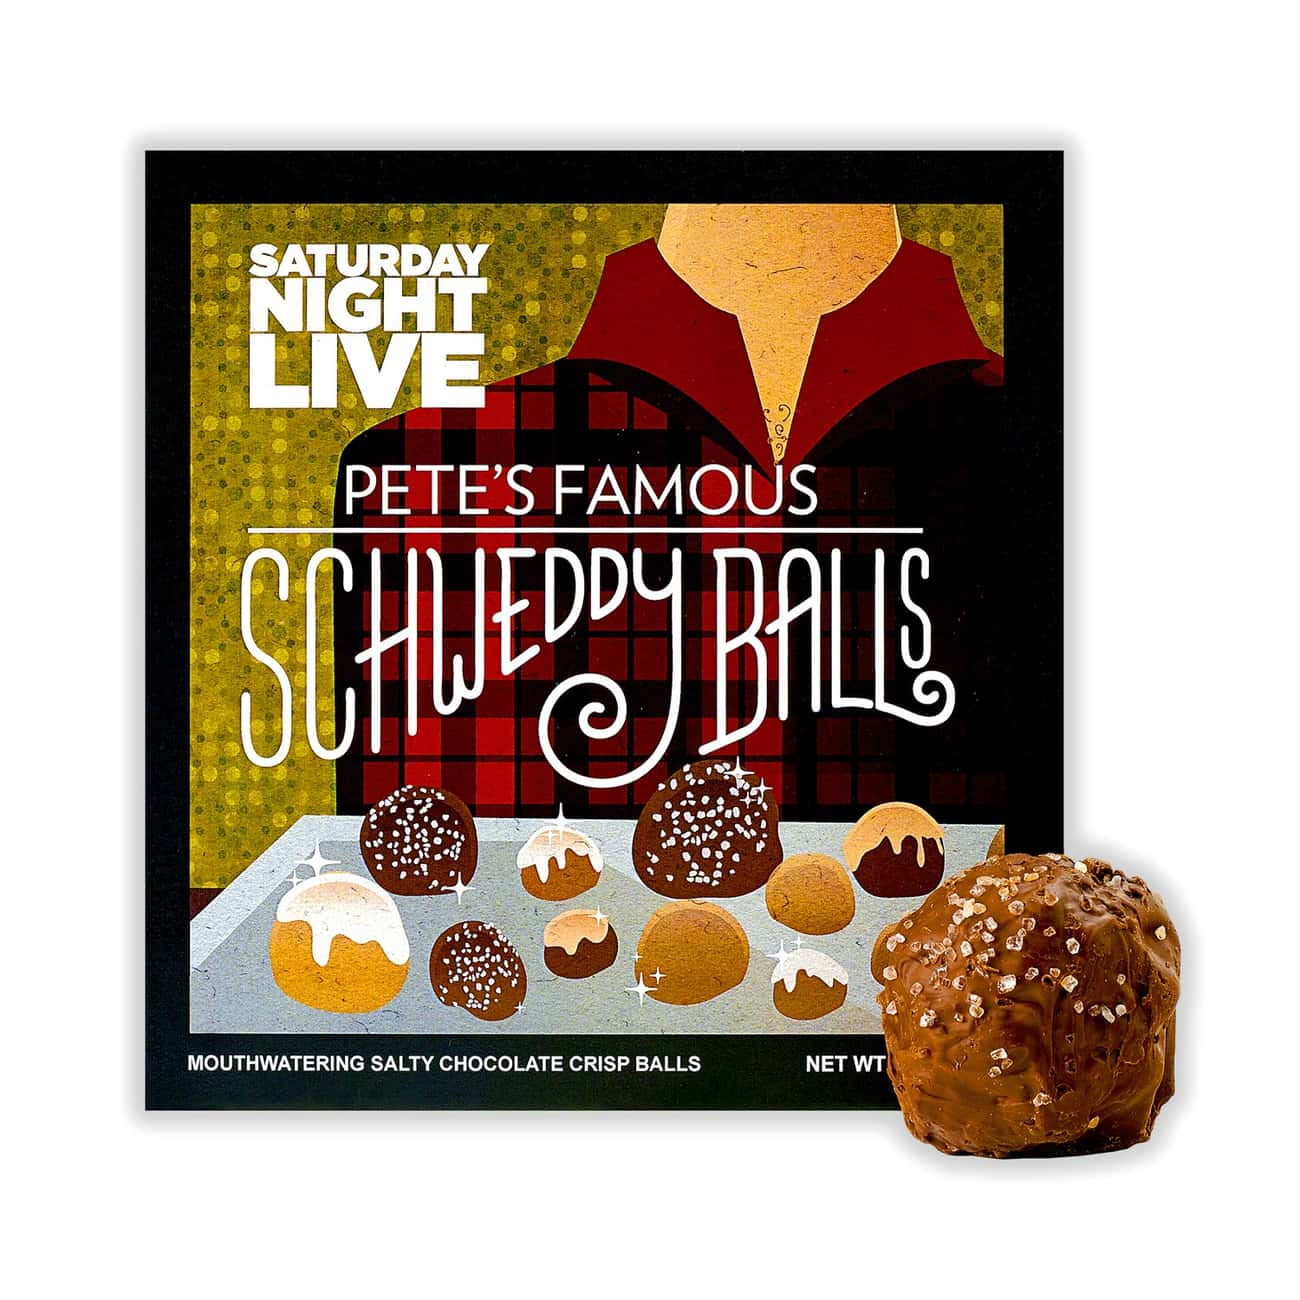 Pete's Schweddy Balls is listed (or ranked) 2 on the list Perfect Gifts for Saturday Night Live Fans